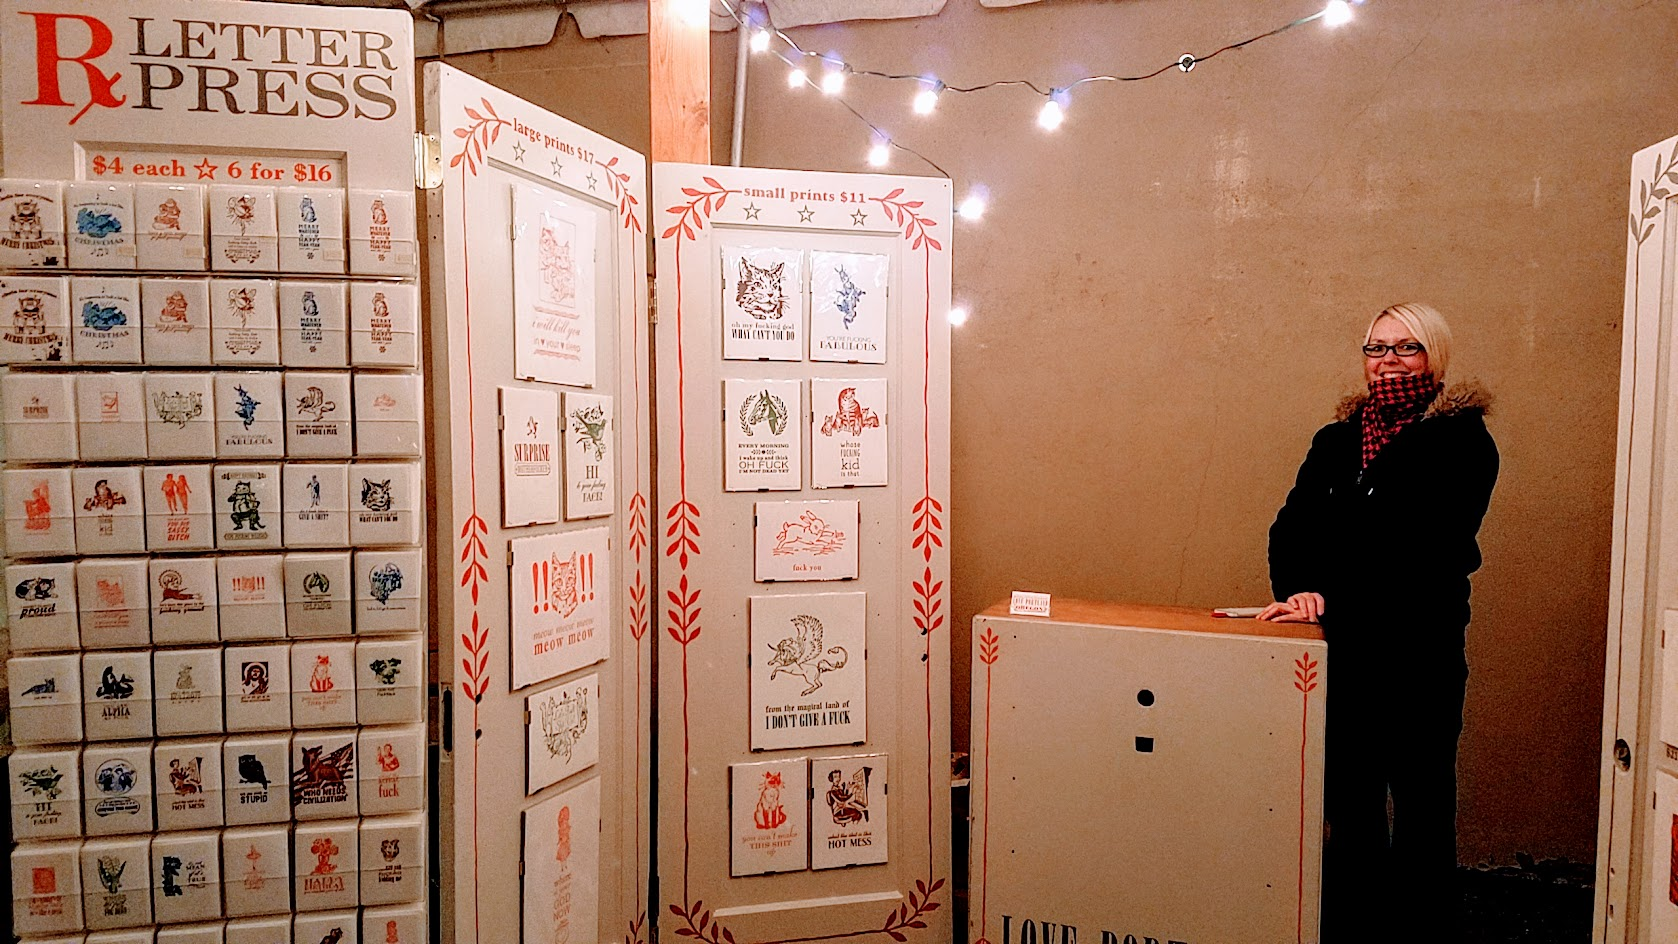 Rx Letterpress the Portland Night Market, held every few months in the Central Industrial District in a warehouse, during the November 2016 market